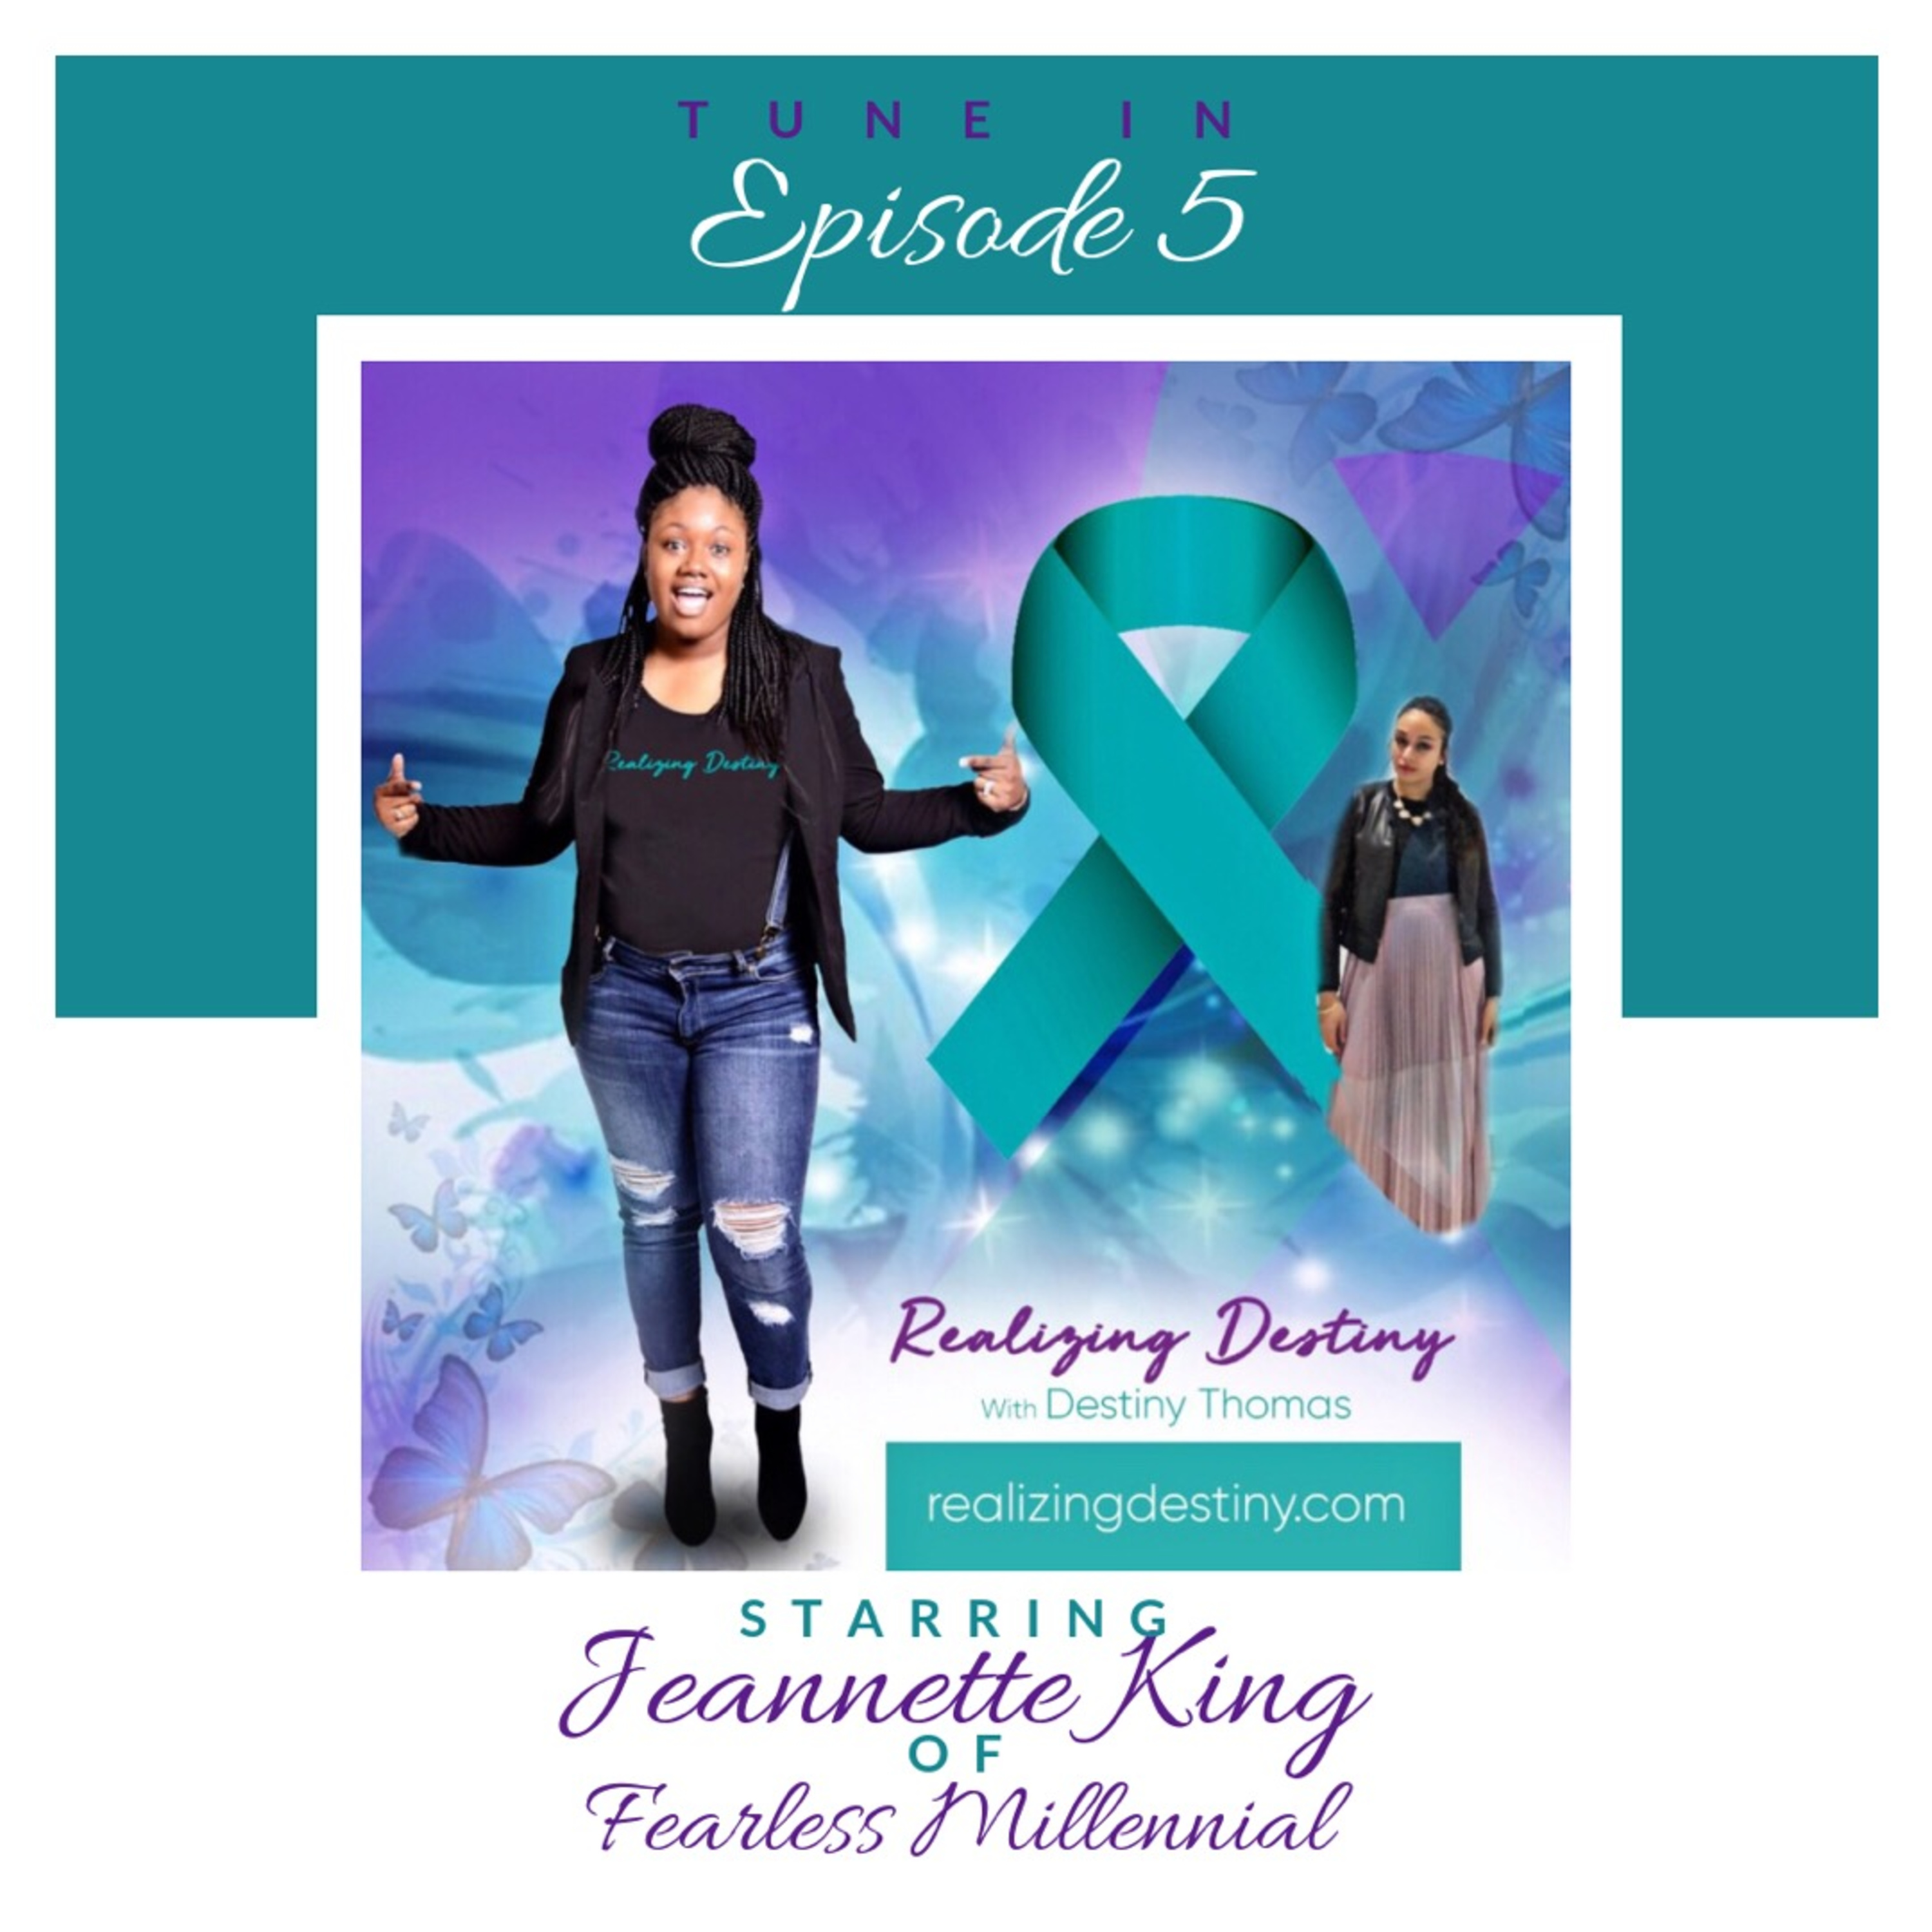 God you told me to jump, now what? Entrepreneurship w/ God Special Guest Jeannette King